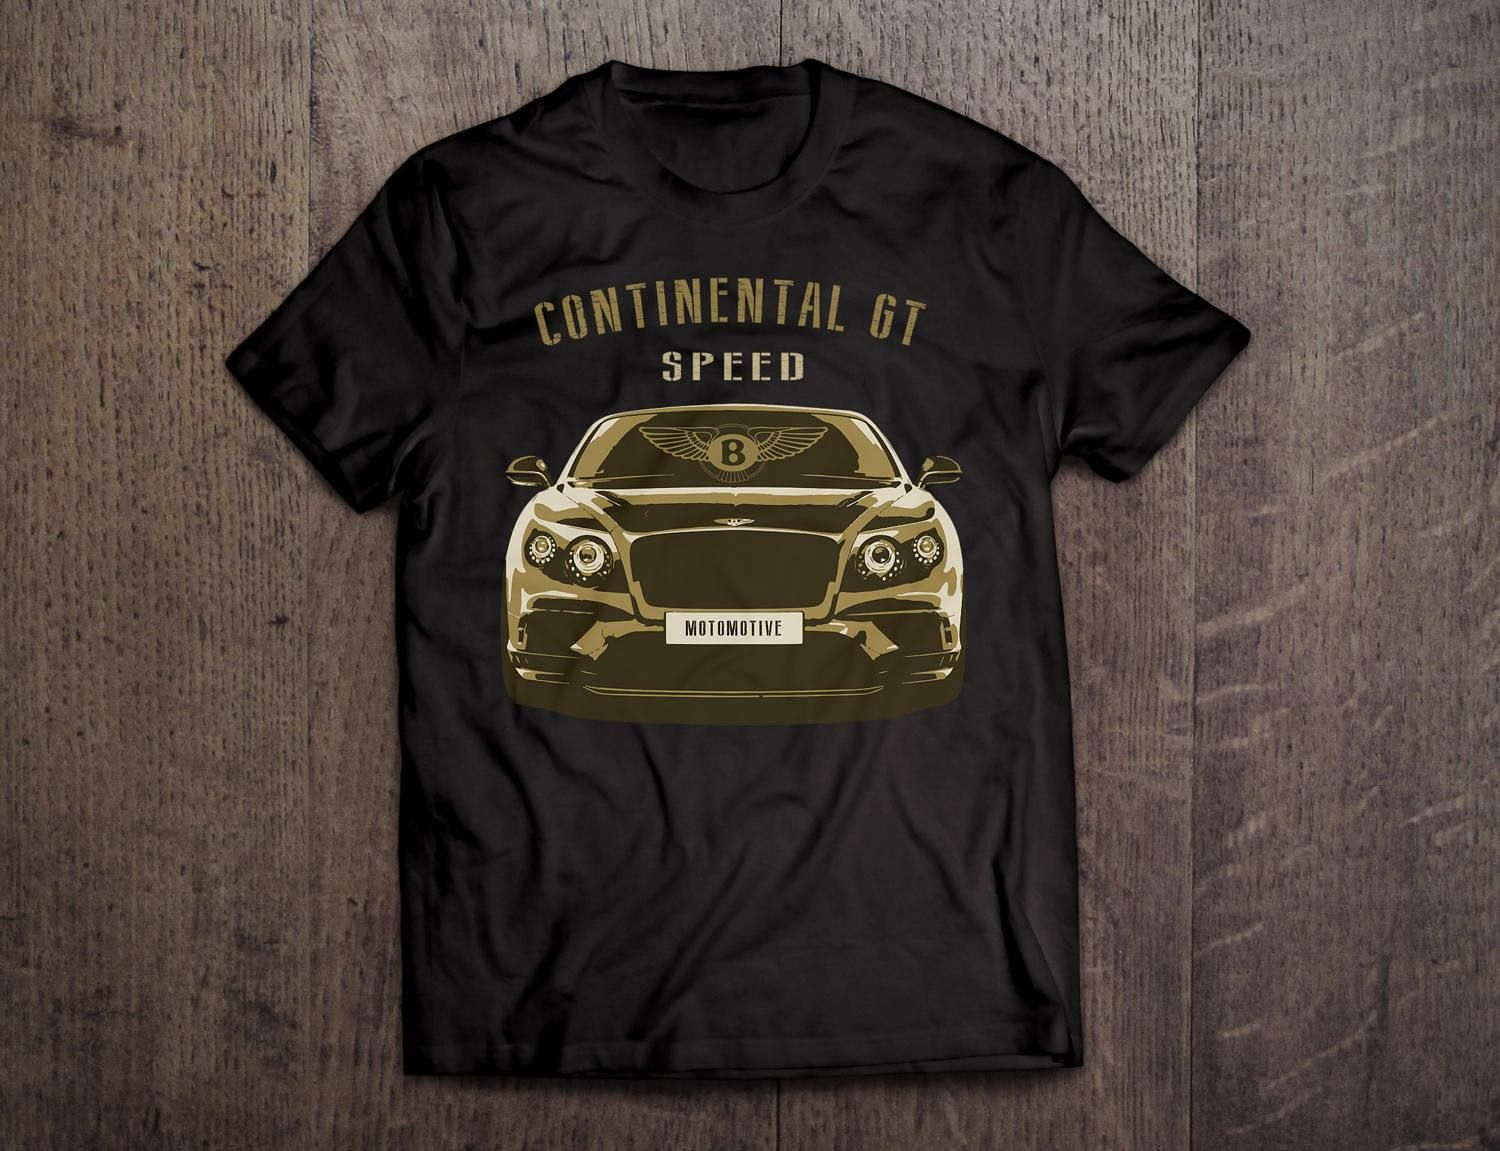 Bentley Continental Gt Bentley Shirts Black T Shirts Car T Shirts Men T Shirt Women T Shirts Muscle Sports Car Shirt Cool T Shirts Best Quality T Shirts